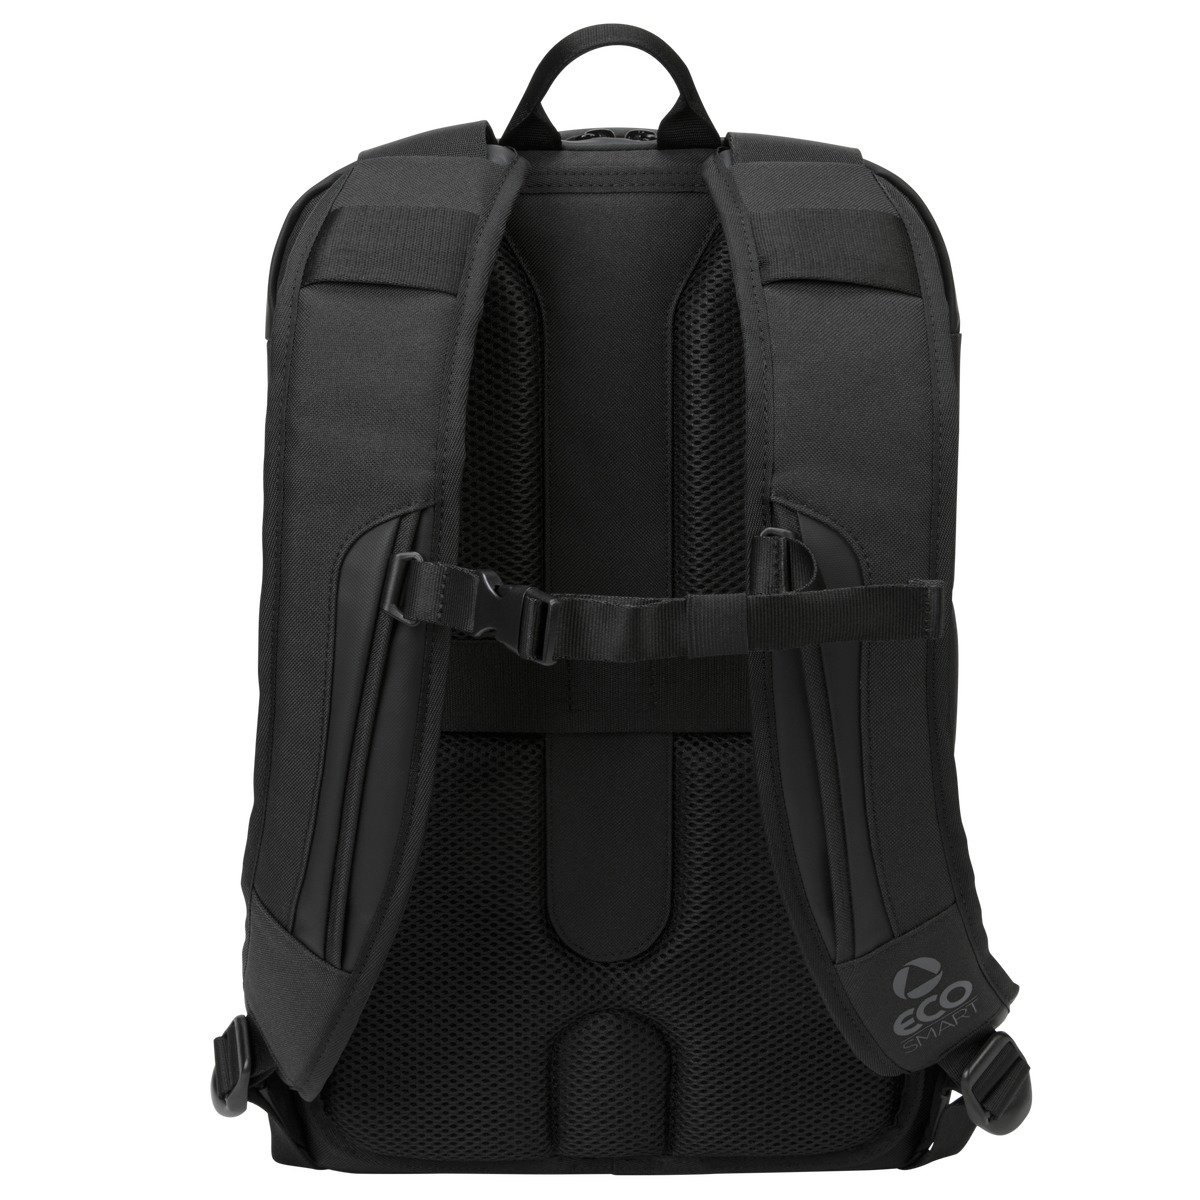 19c276cd71d Amazon.com: Targus Balance EcoSmart Checkpoint-Friendly Backpack for 14-Inch  Laptop, Black (TSB940US): Computers & Accessories